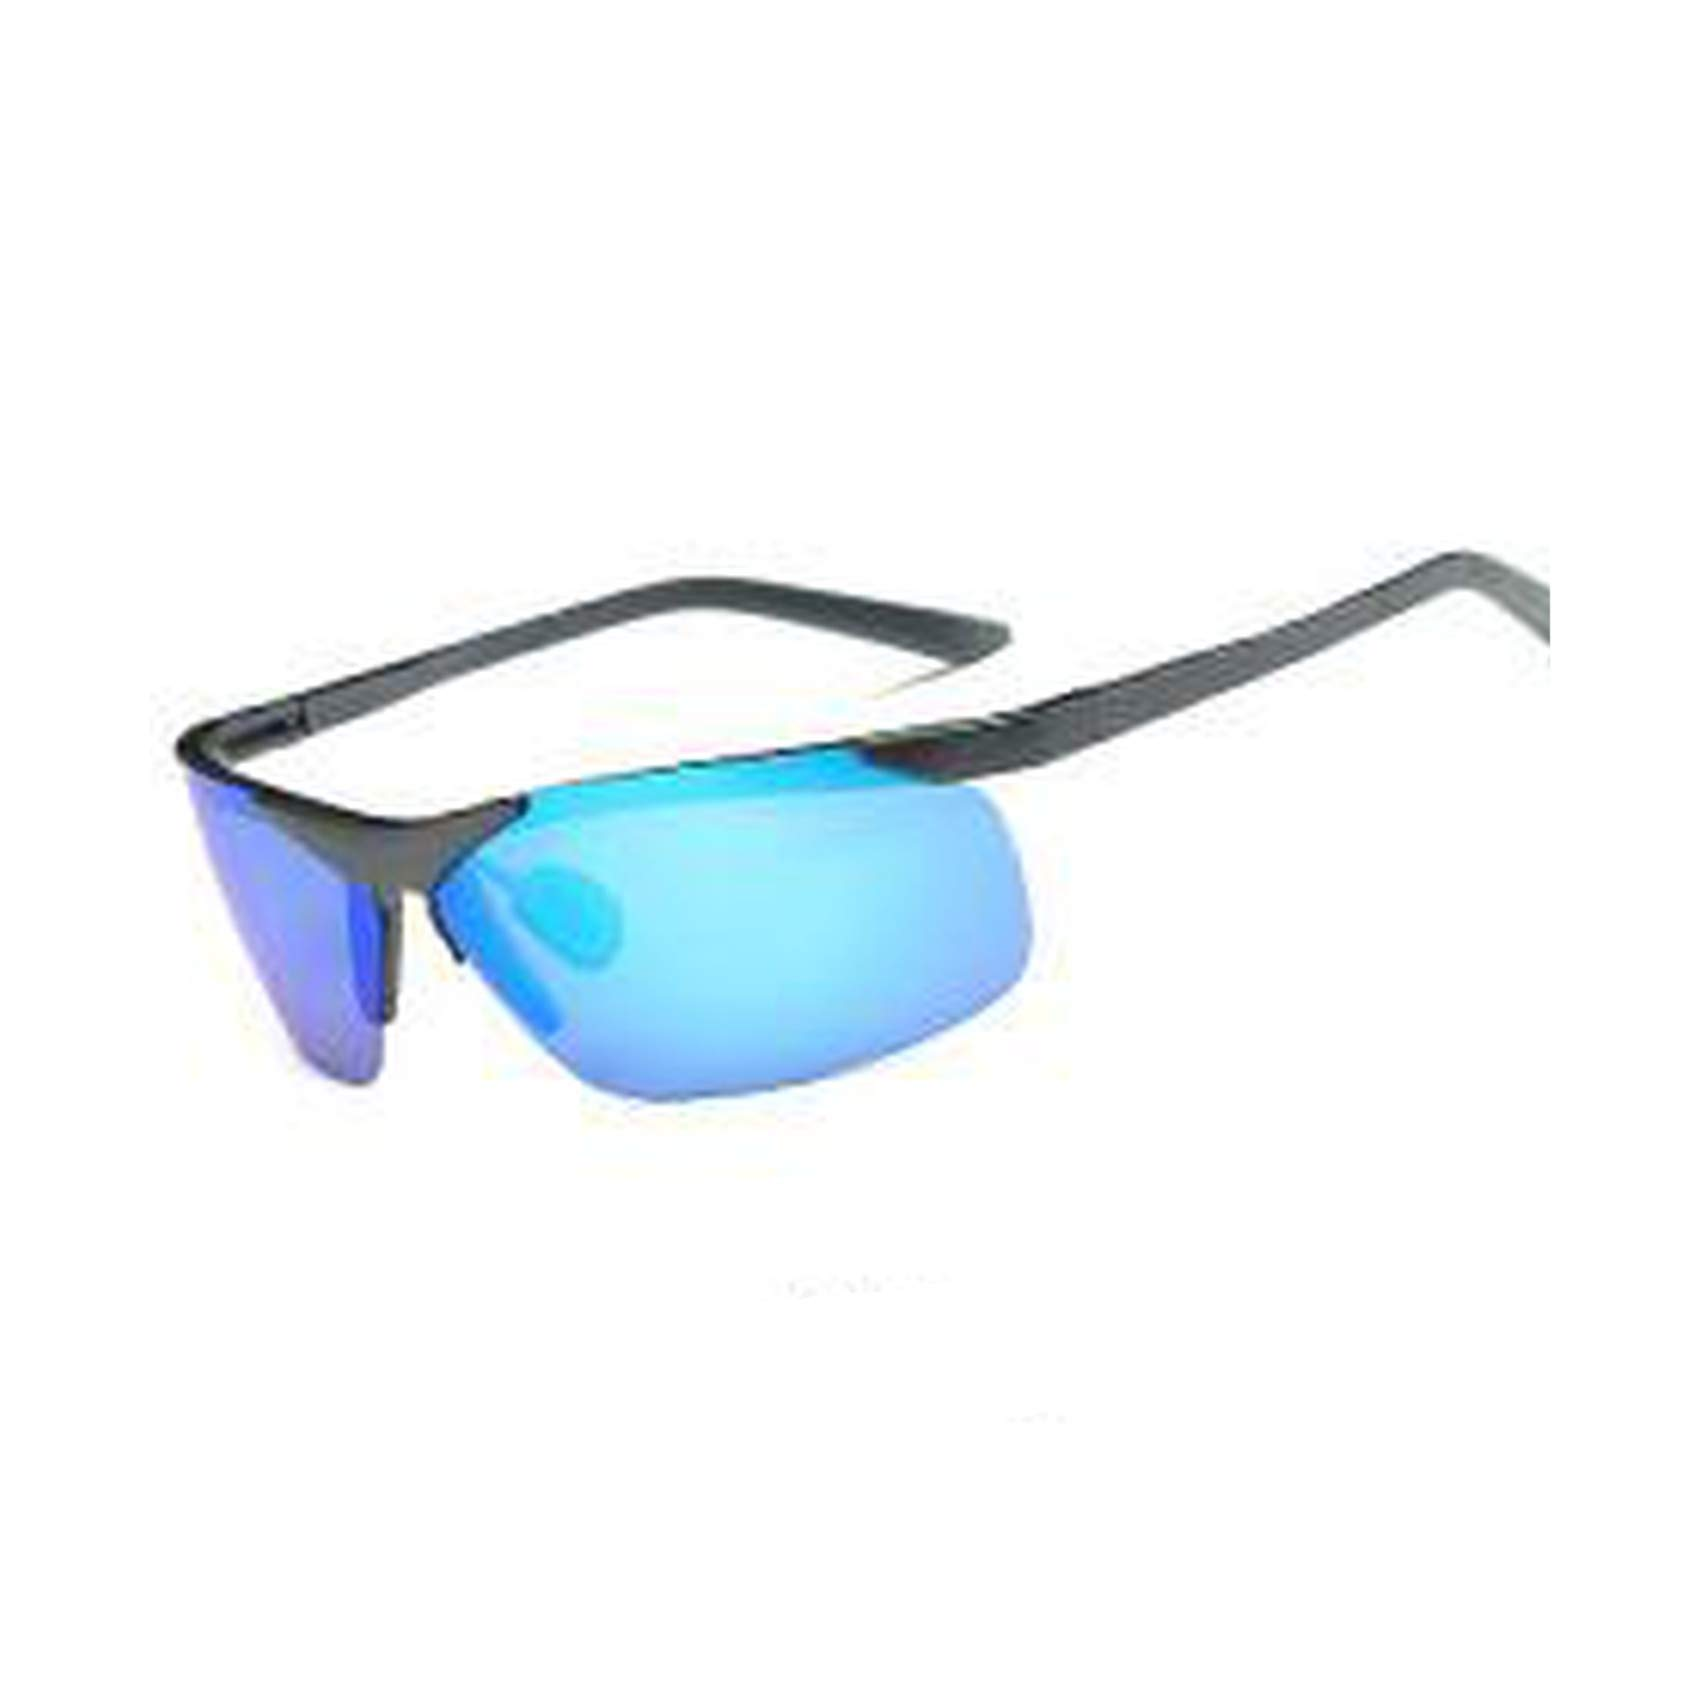 Outdoor Sports Imitation Aluminum Magnesium New Sunglasses Sport Riding Polarized Glasses Cycling Eyewear Multi Color,D